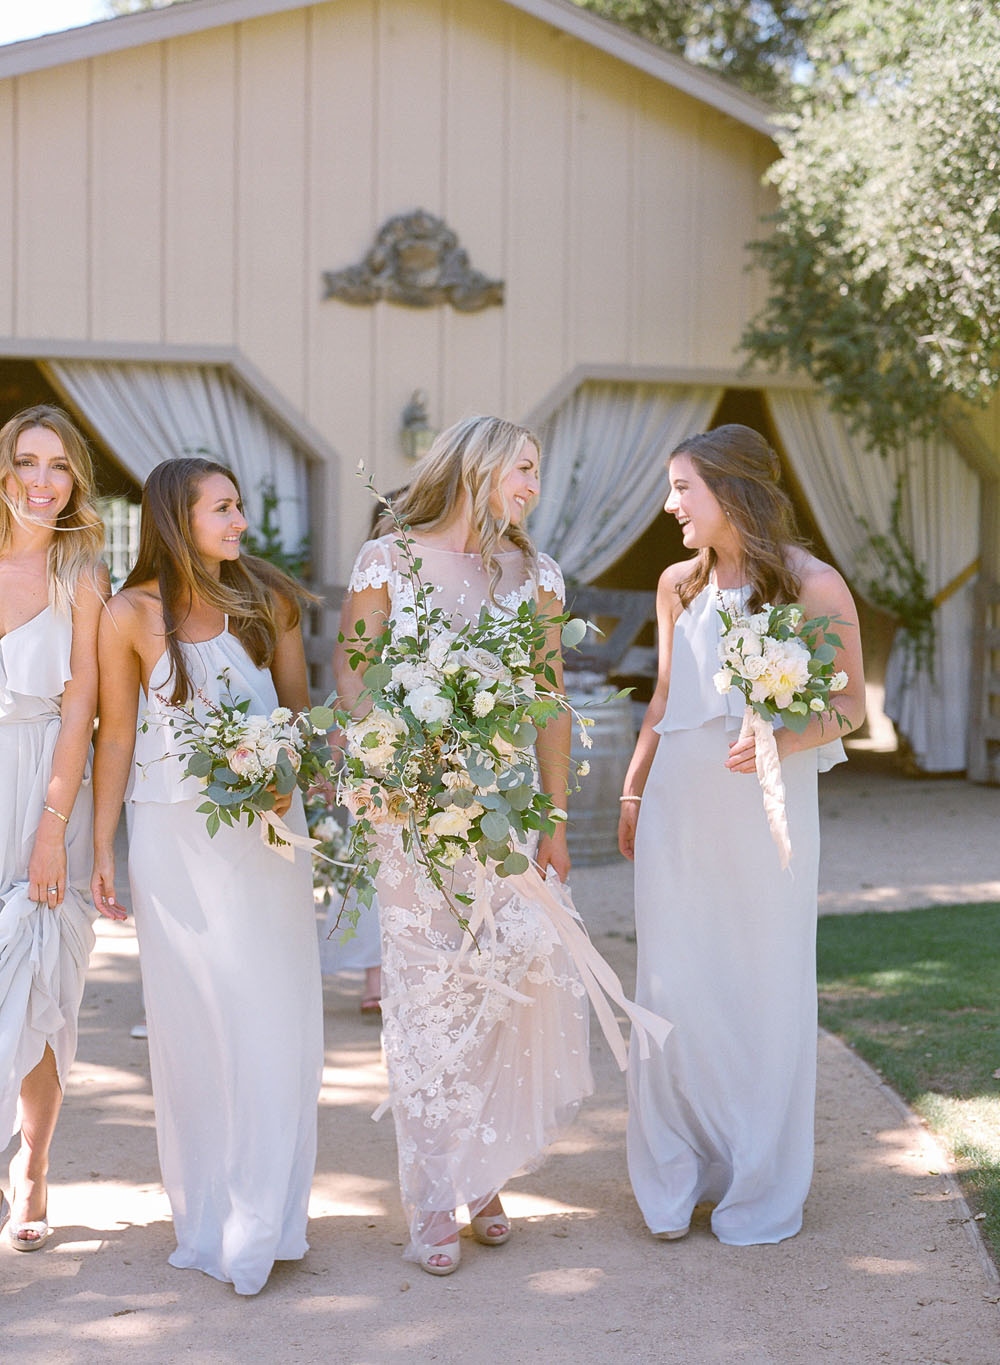 16-holman-ranch-wedding-stylist-kelly-oshiro023